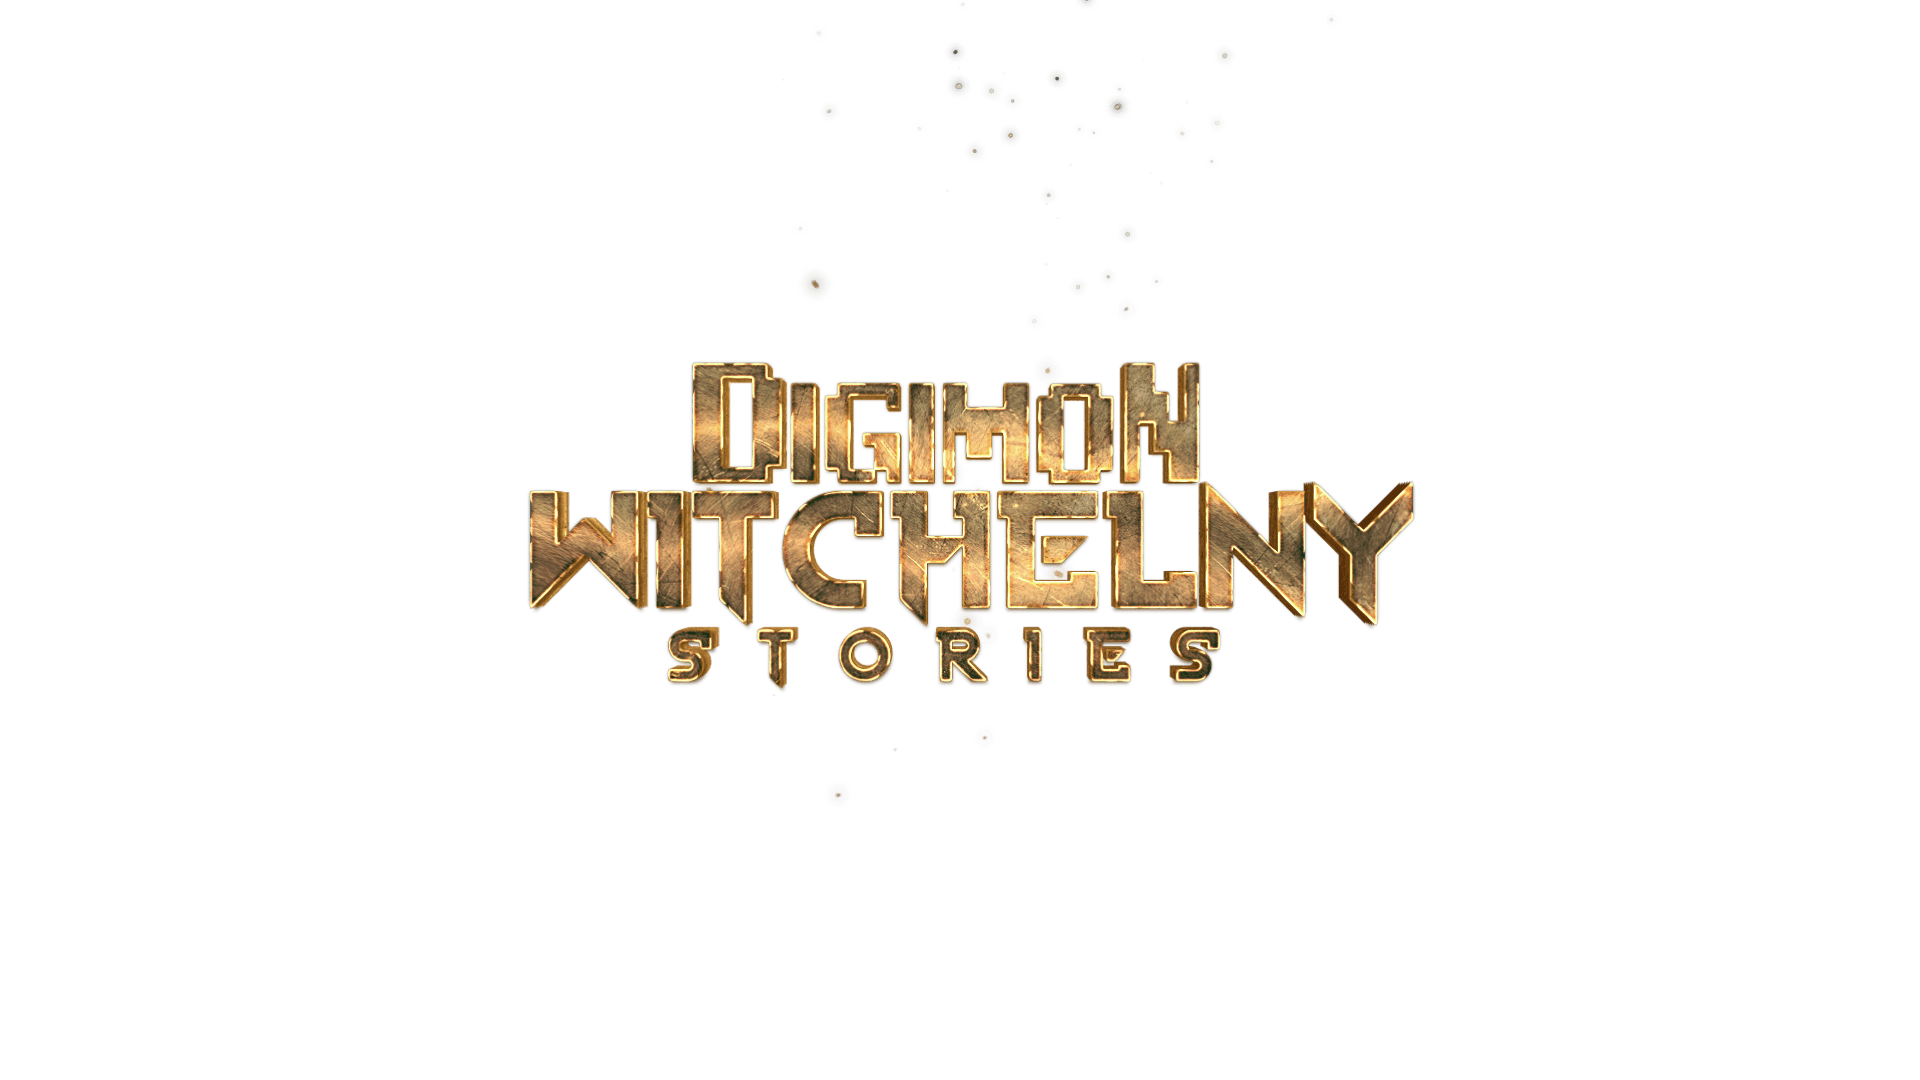 digimon-witchelny-stories-logo-png.55182